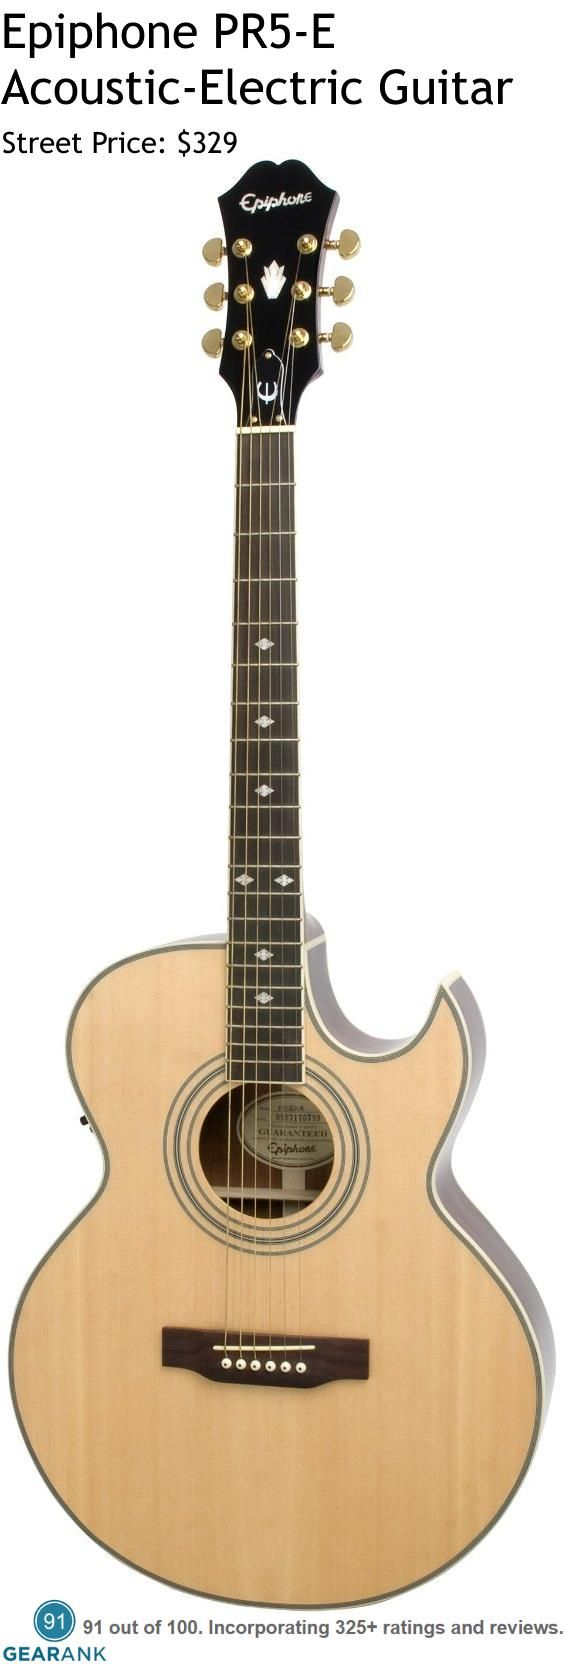 Dovetail template printable guitar - Epiphone Pr5 E Acoustic Electric Guitar It Has A Select Spruce Top With